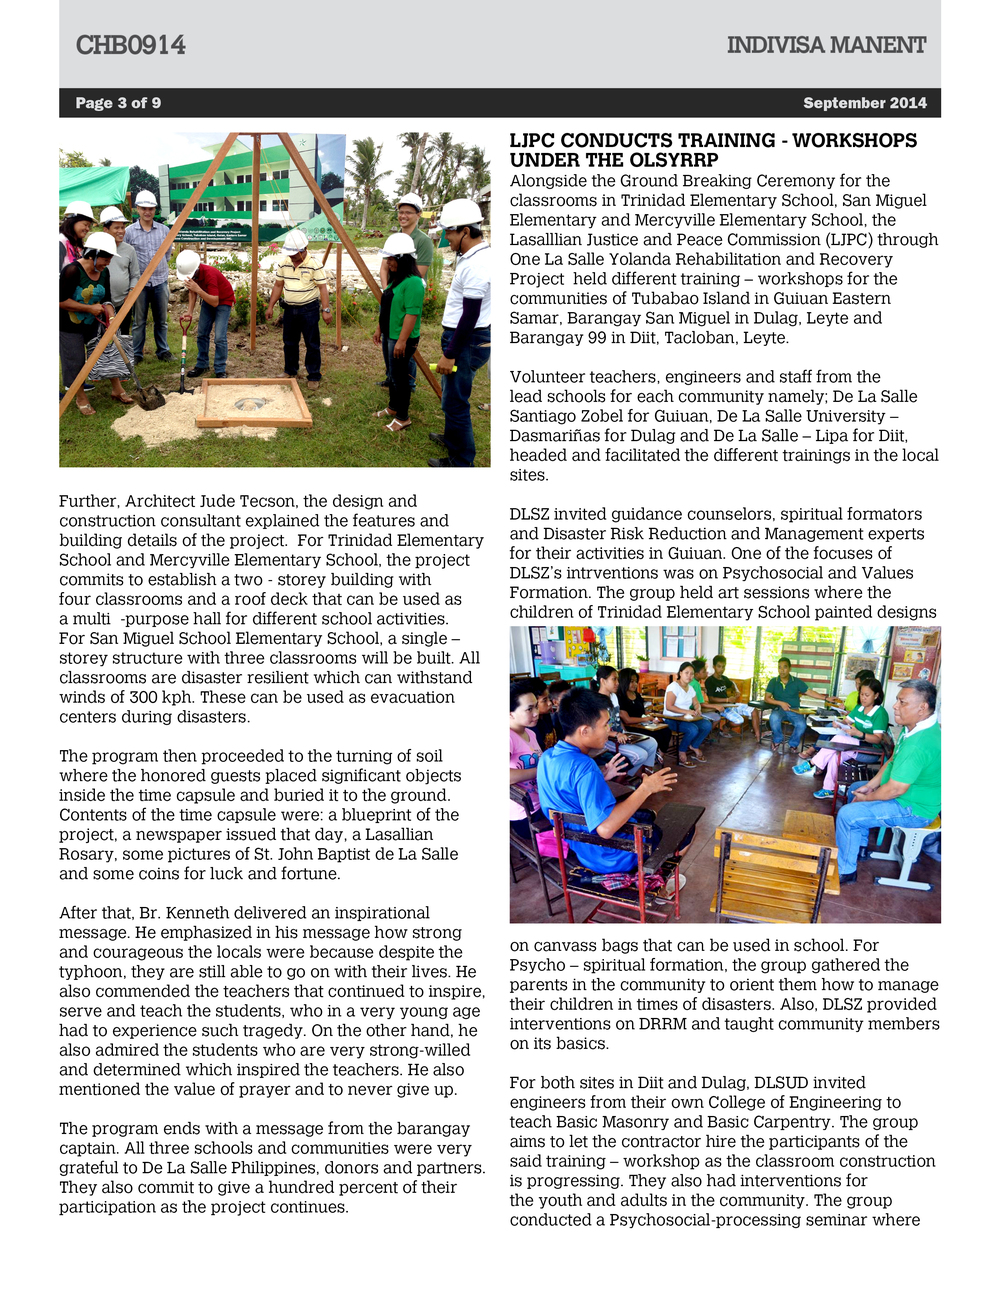 Central house bulletin september 2014 de la salle philippines chb09143g malvernweather